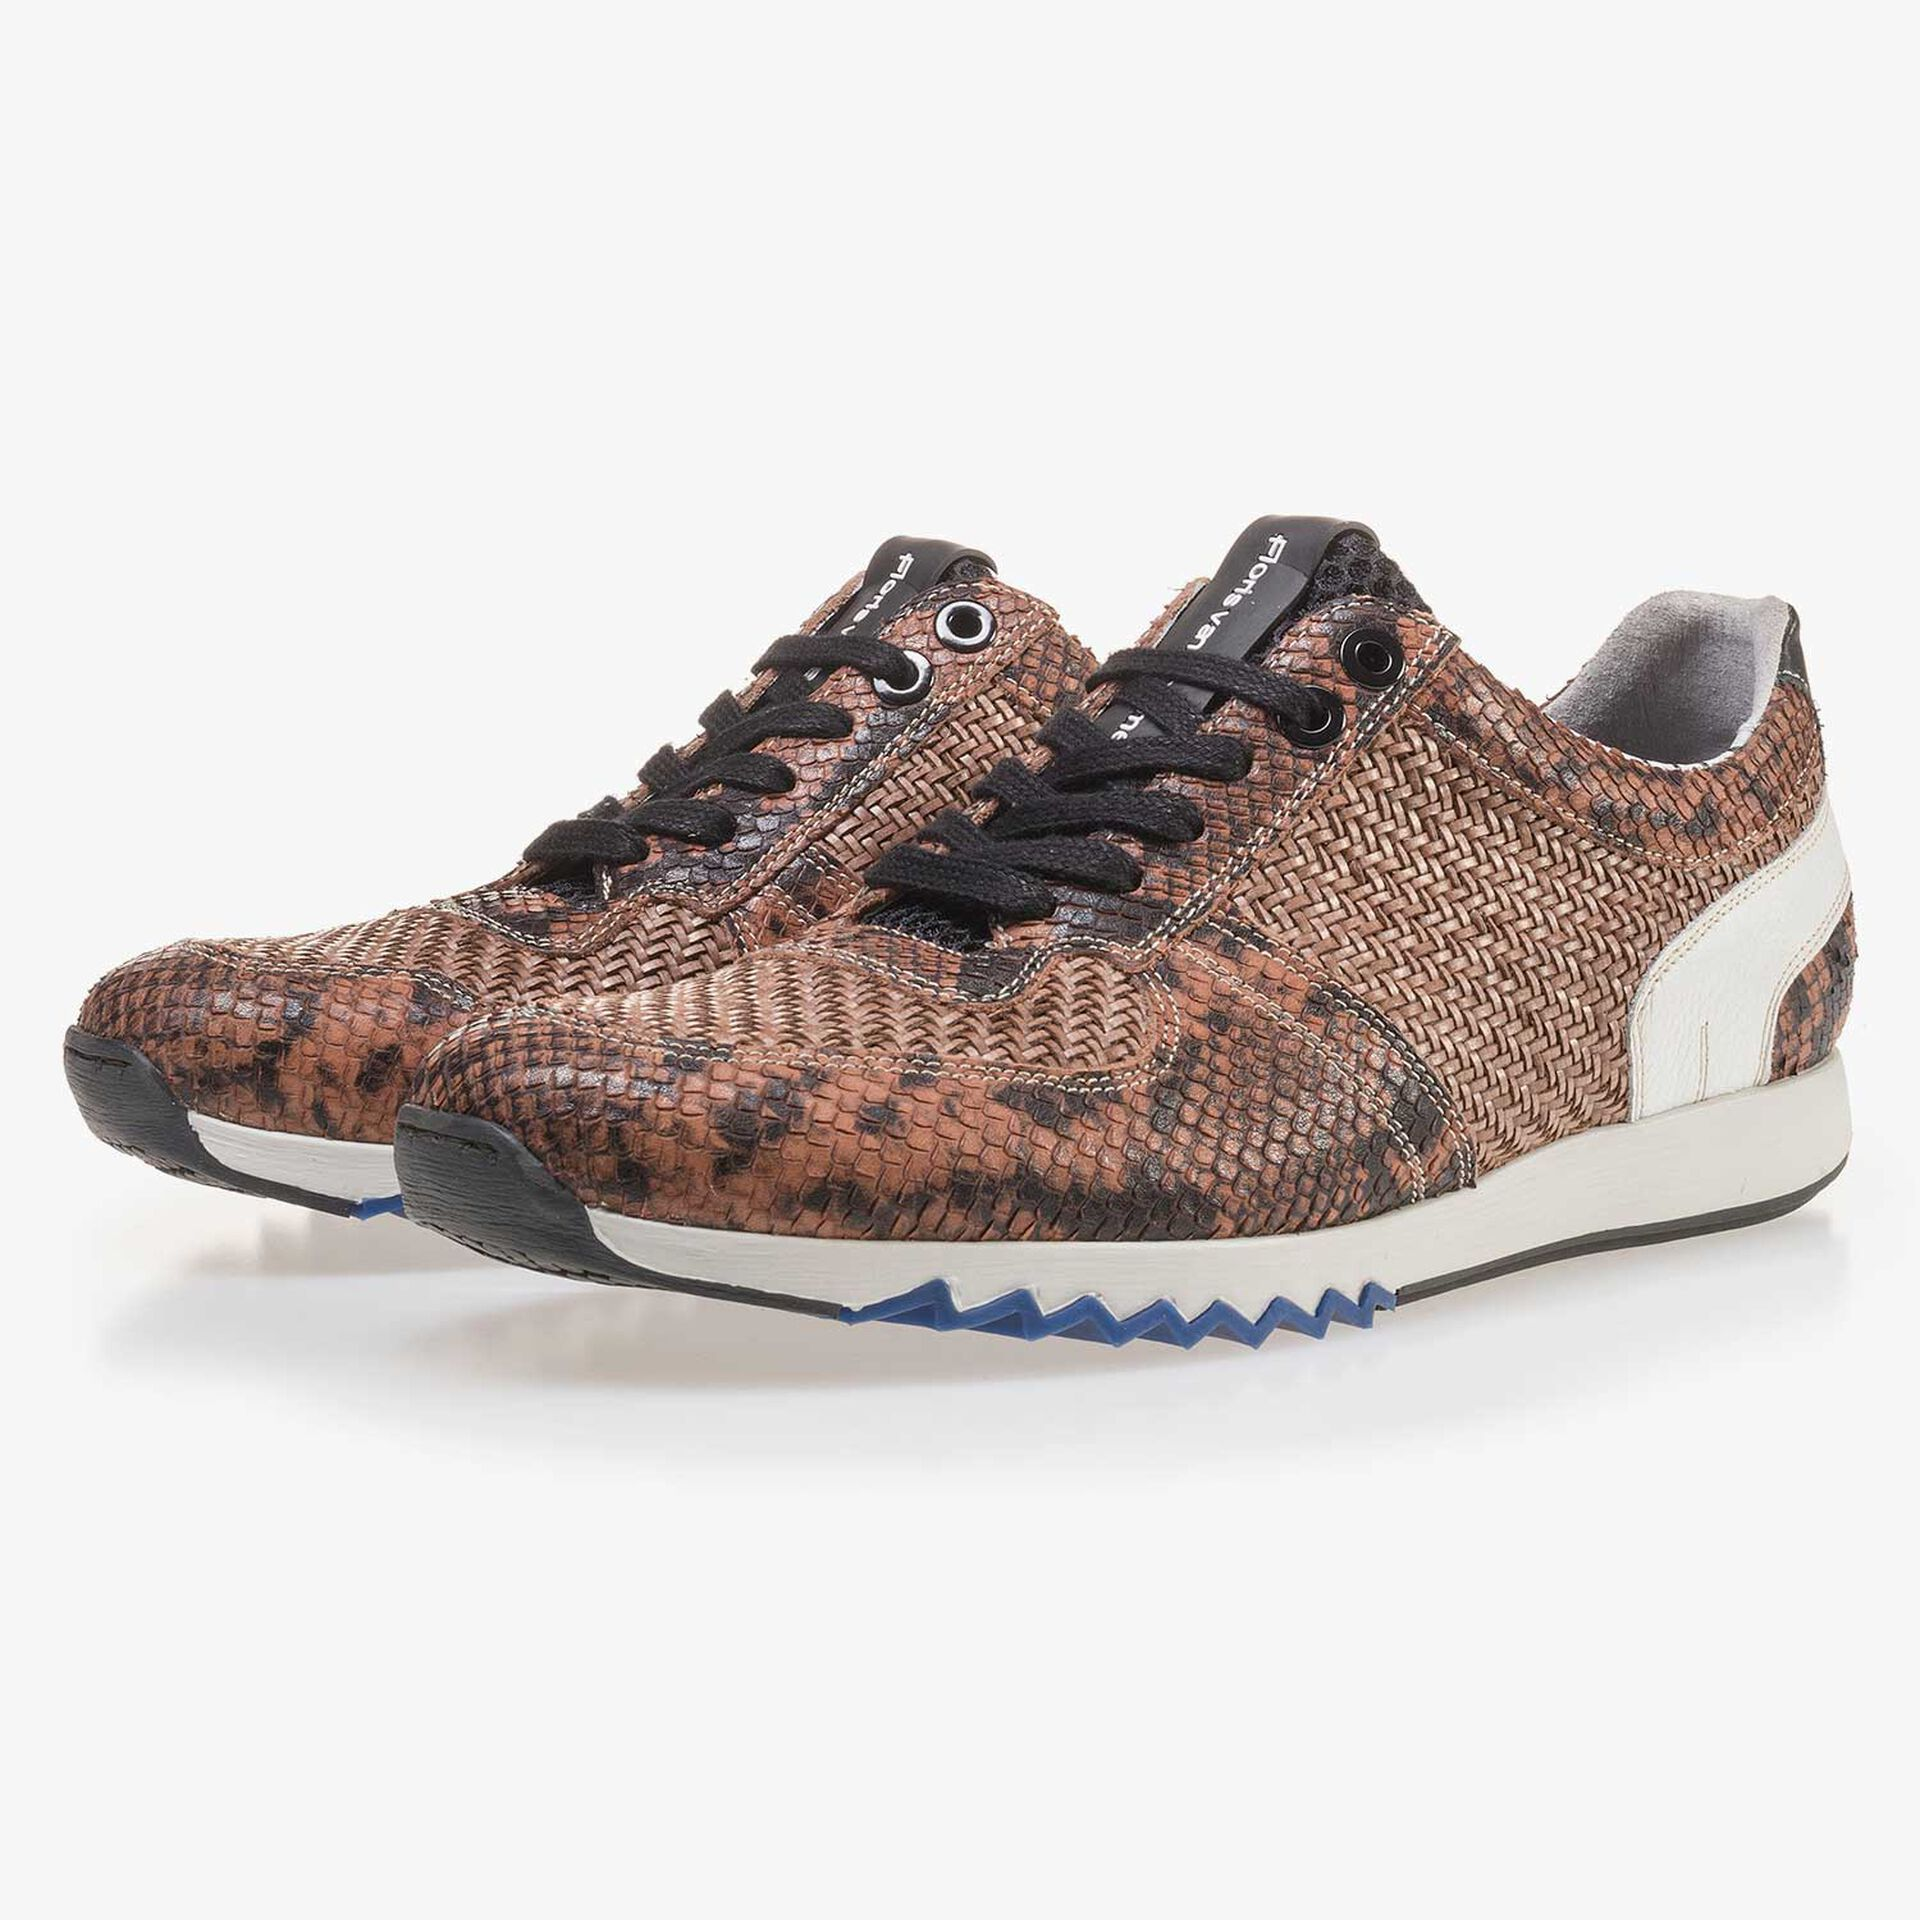 Cognac-coloured leather sneaker finished with a snake print